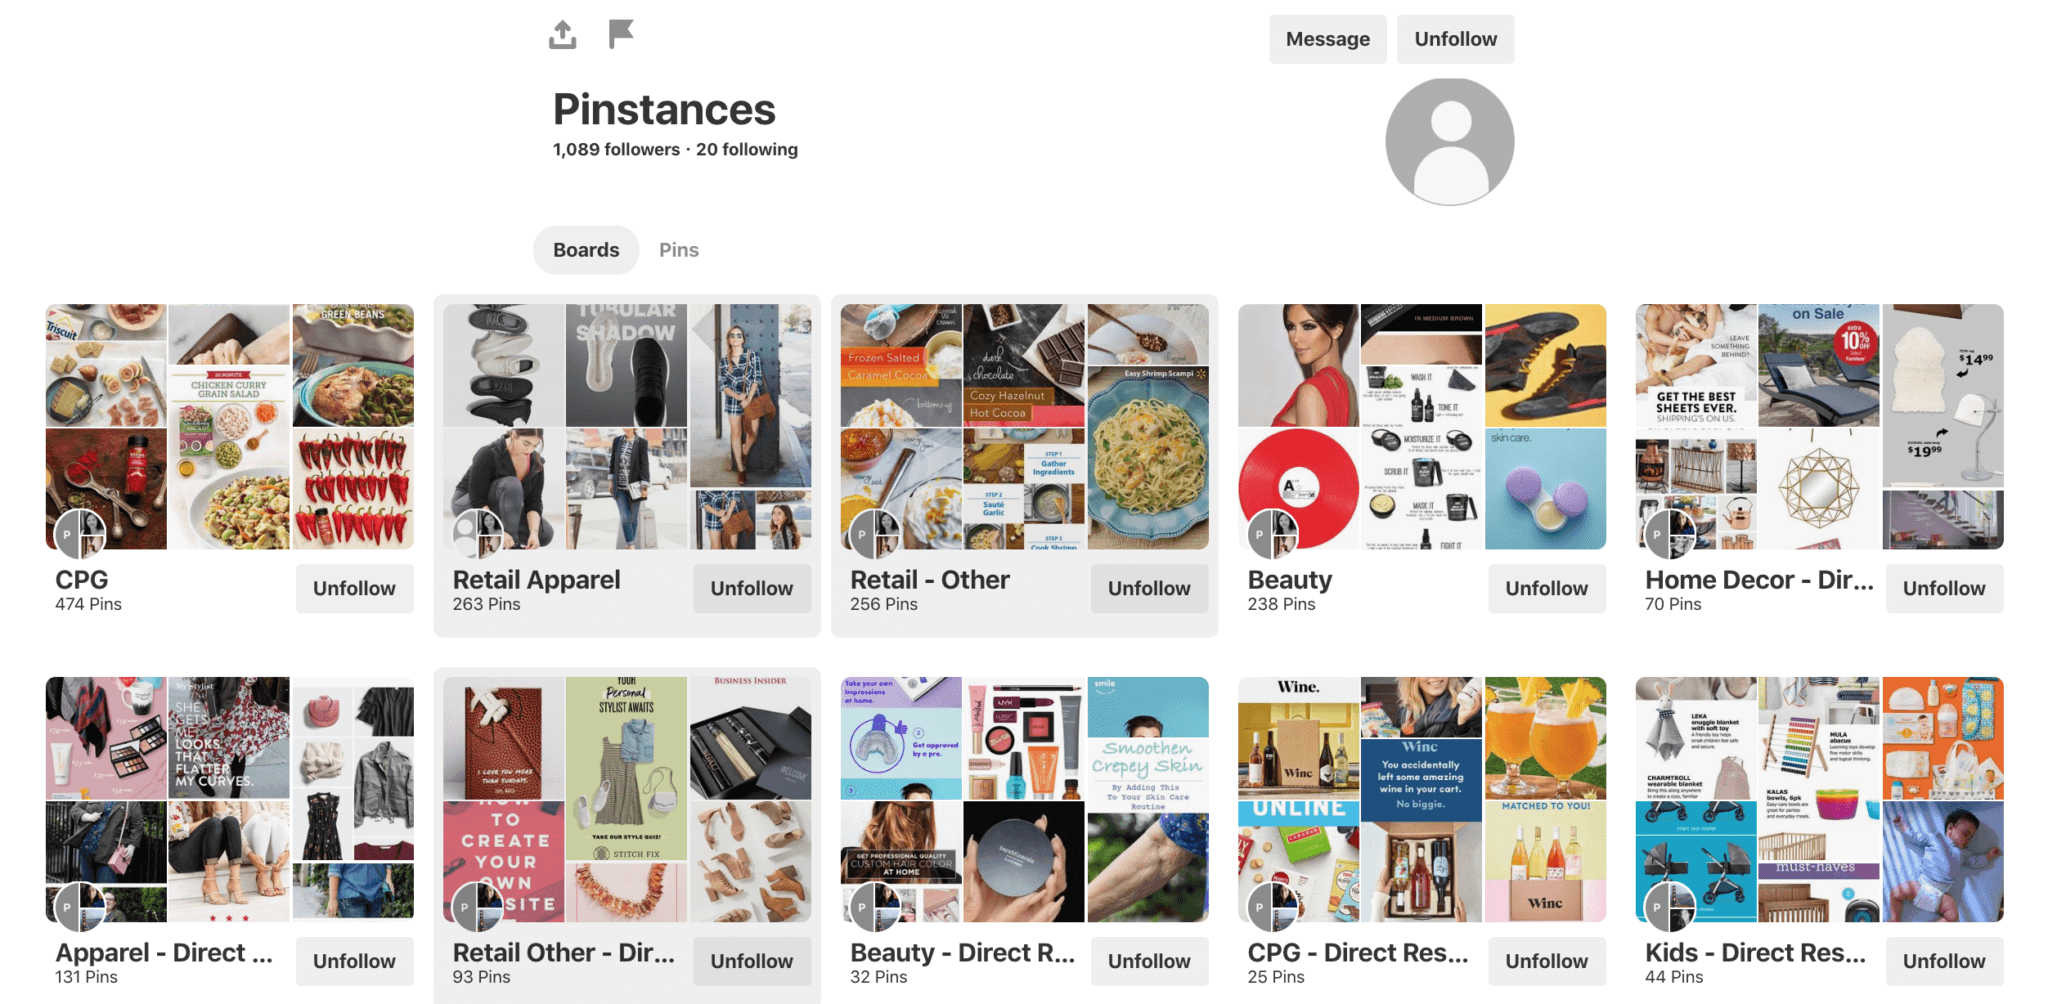 Pinstances Pinterest account